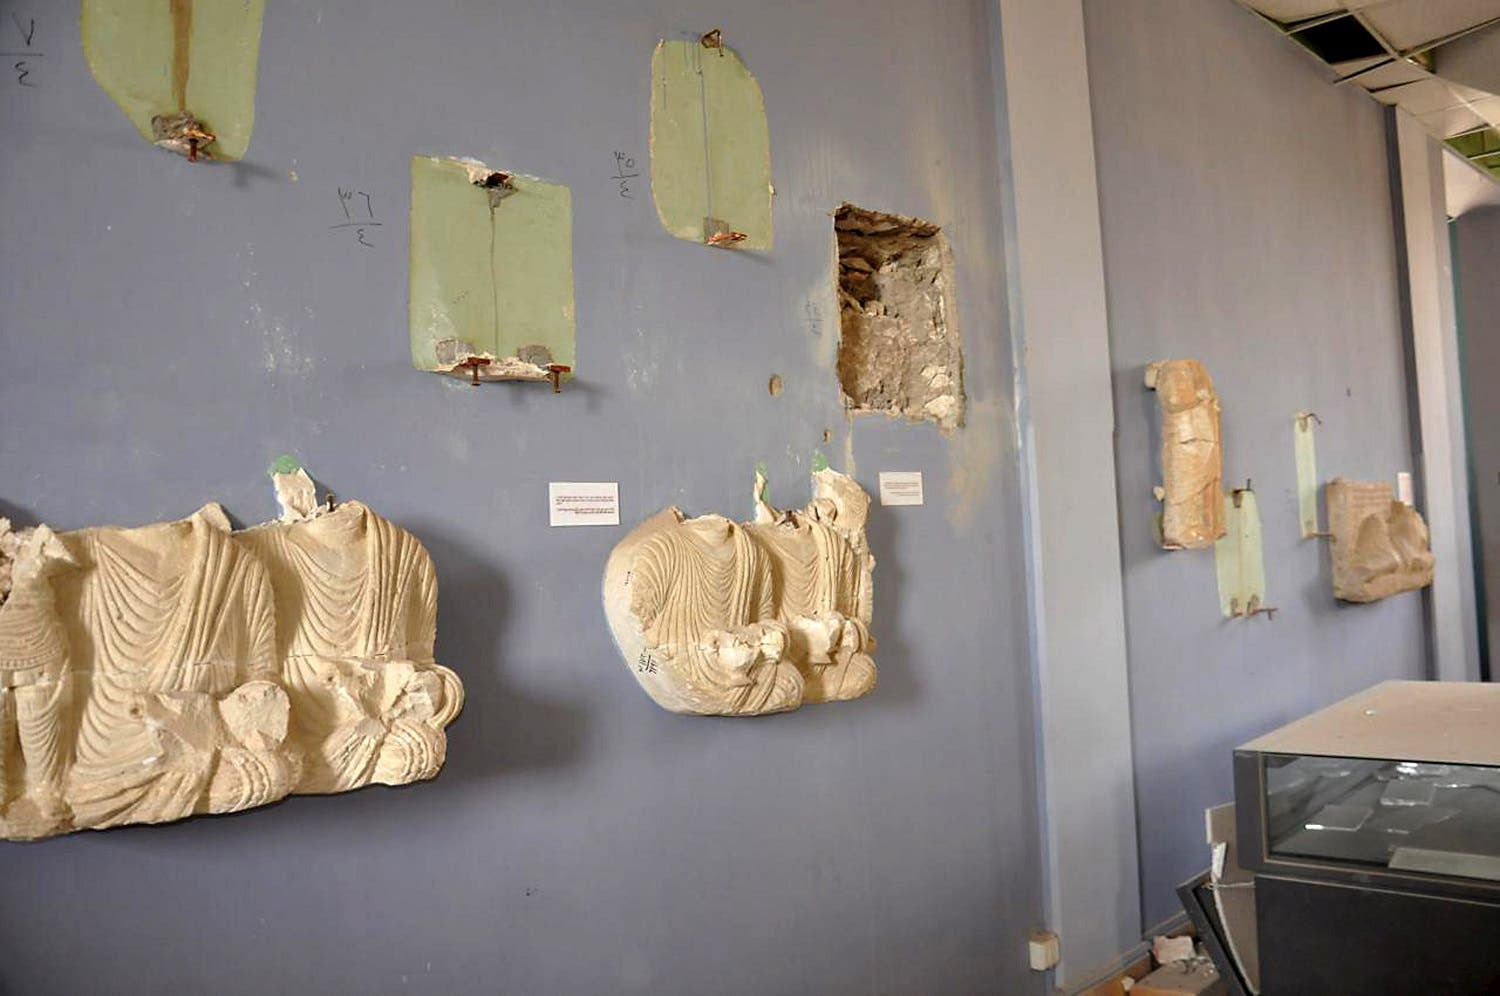 A view shows damaged artefacts inside the museum of the historic city of Palmyra, after forces loyal to Syria's President Bashar al-Assad recaptured the city, in Homs Governorate in this handout picture provided by SANA on March 27, 2016. REUTERS/SANA